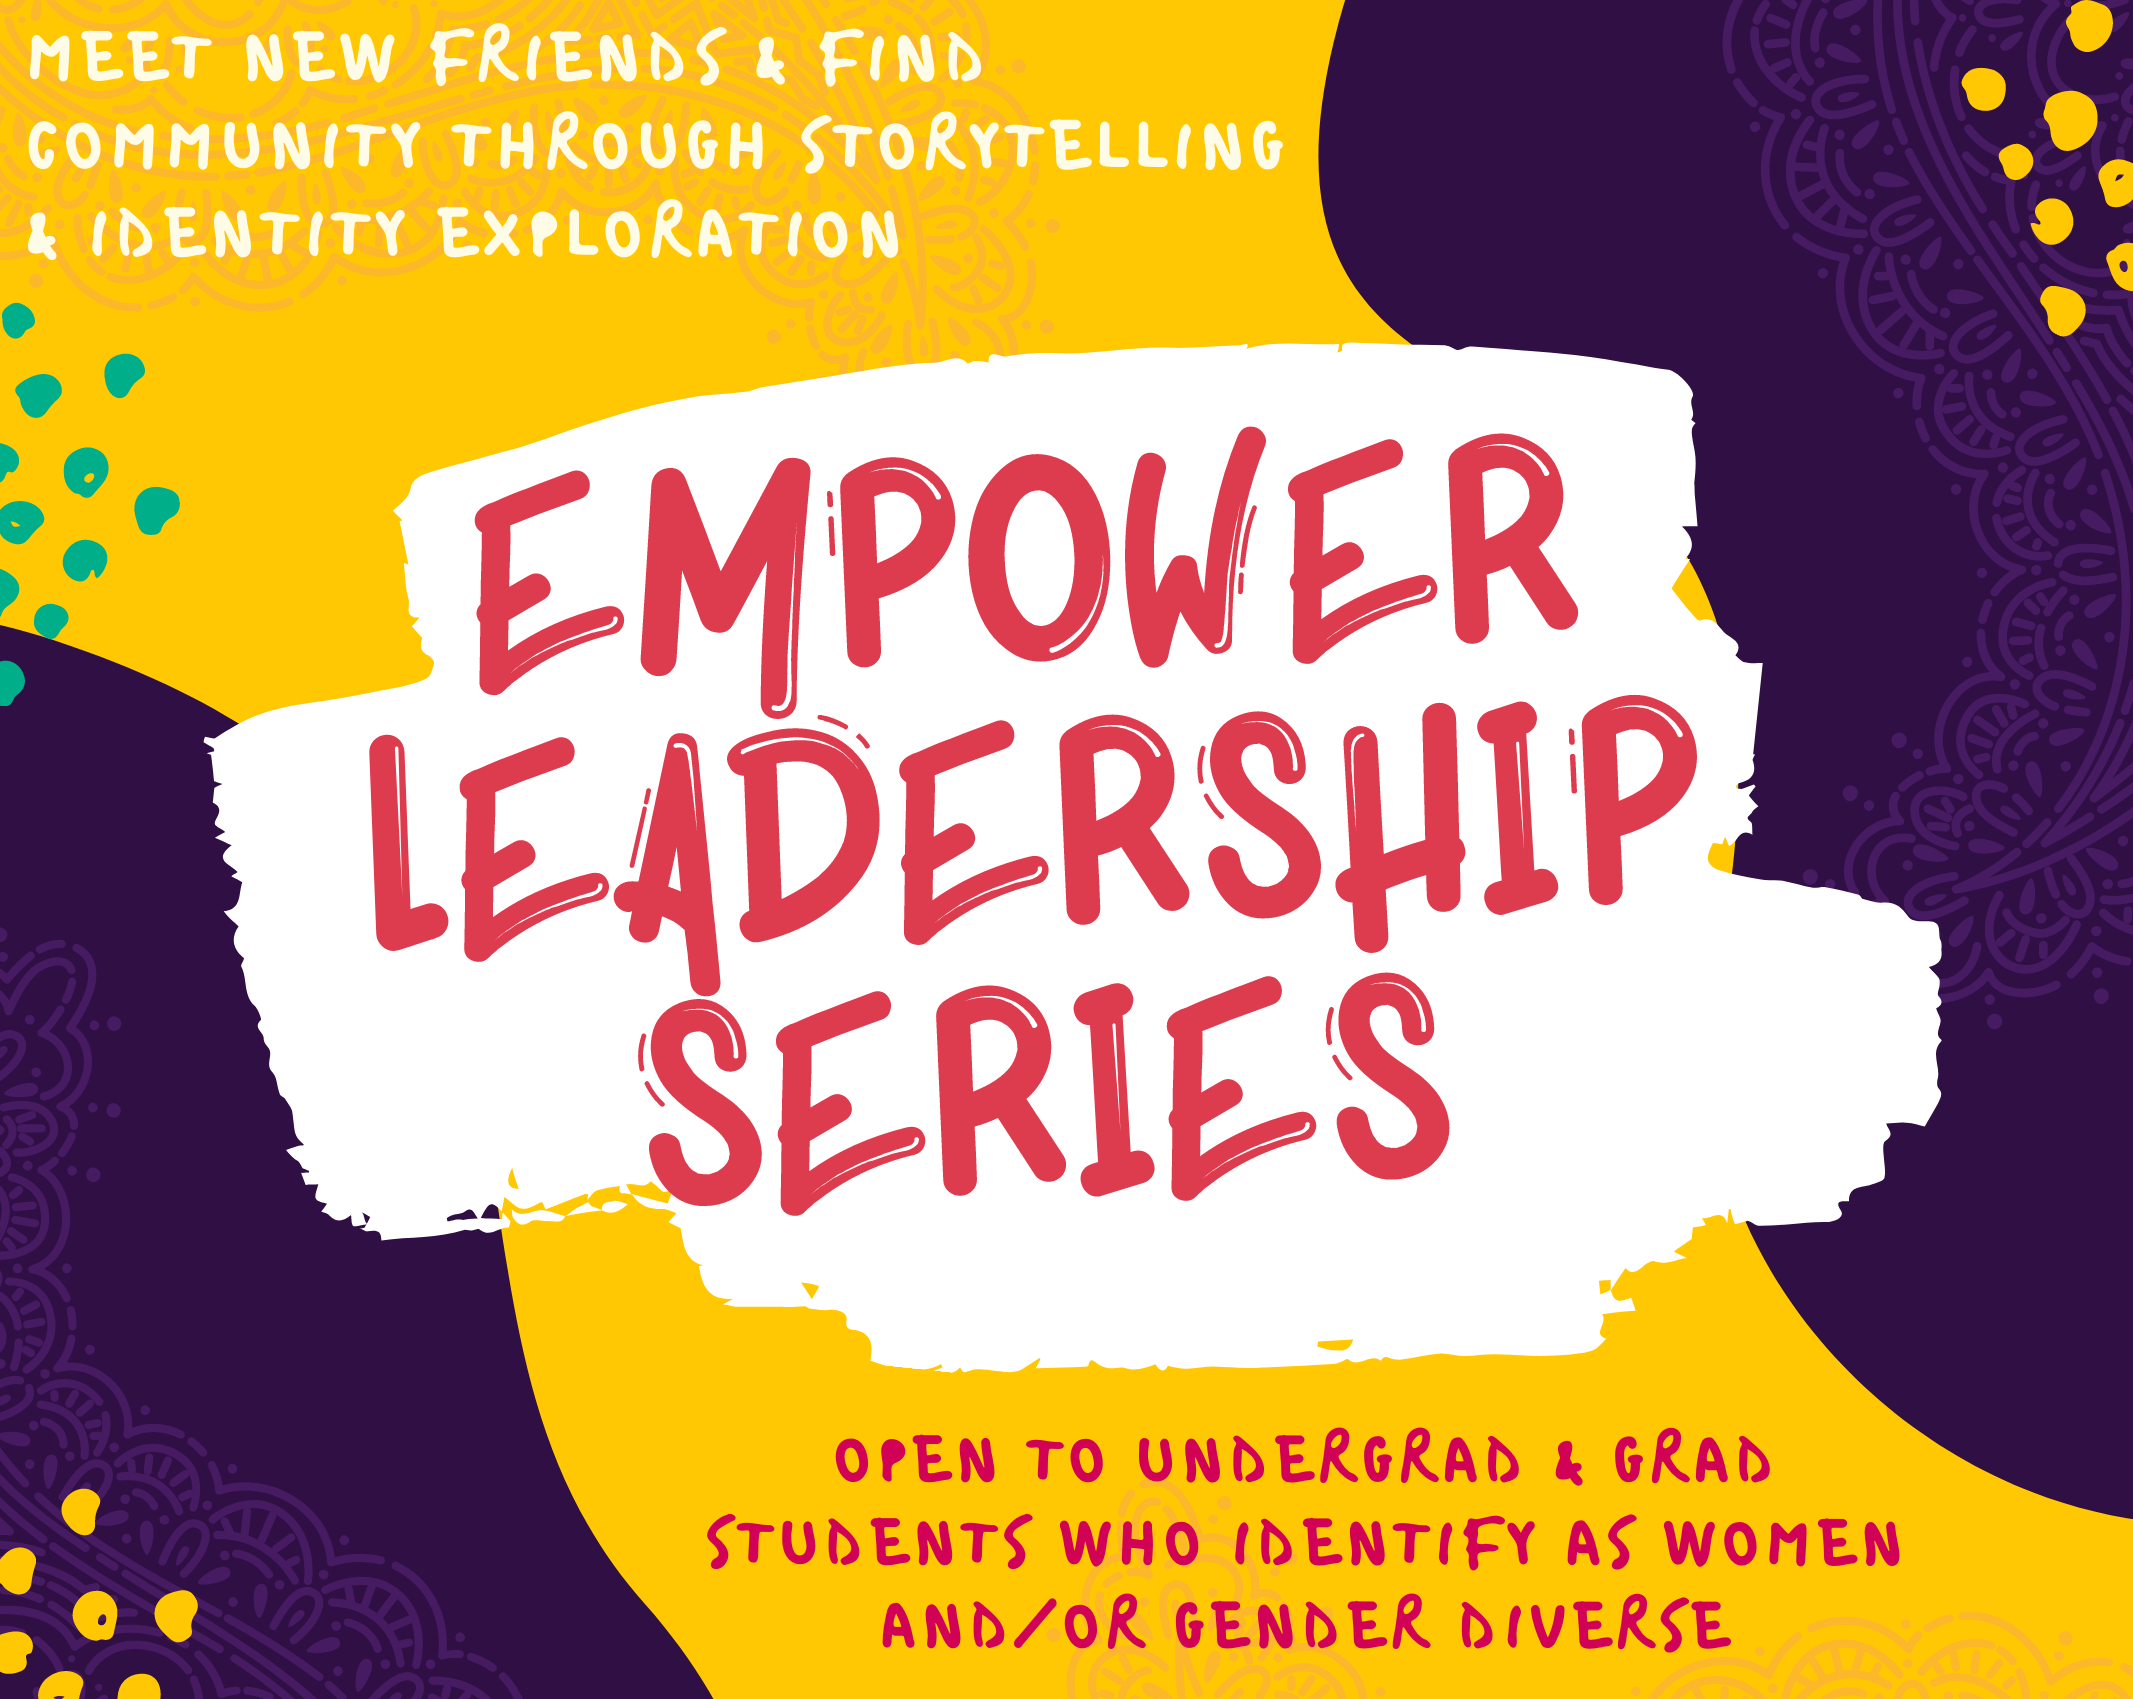 Meet new friends and find community through storytelling and identity exploration! Empower Leadership Series, Open to all undergraduate and graduate students who identify as women and/or gender divers